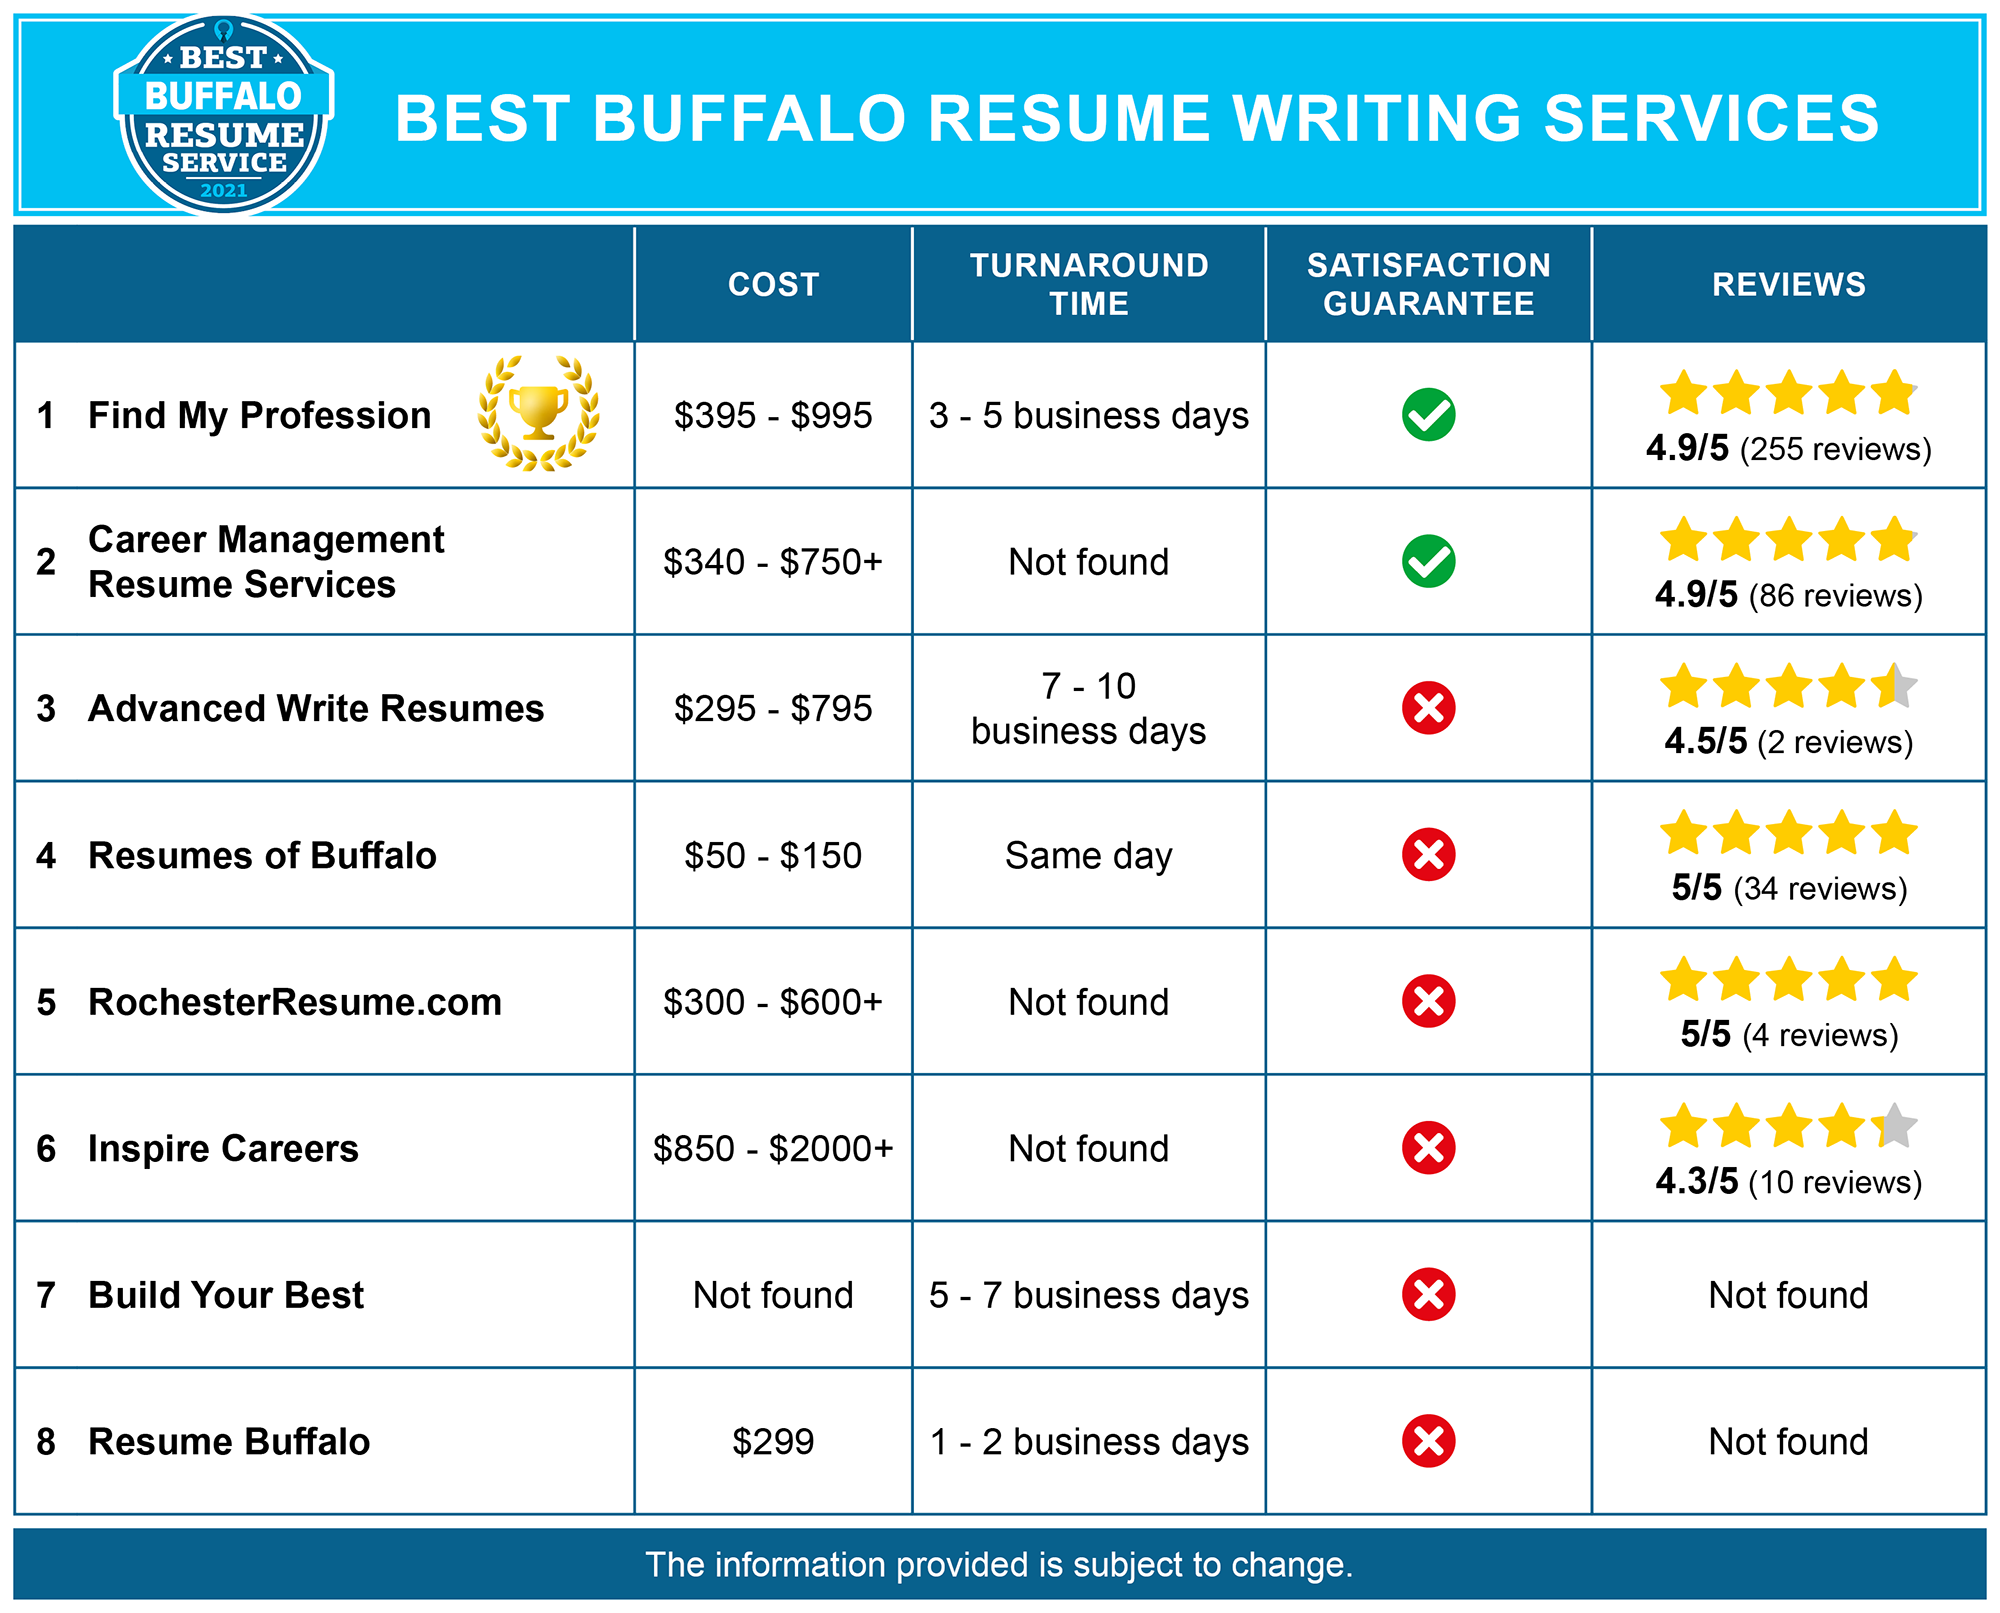 Best Buffalo Resume Services